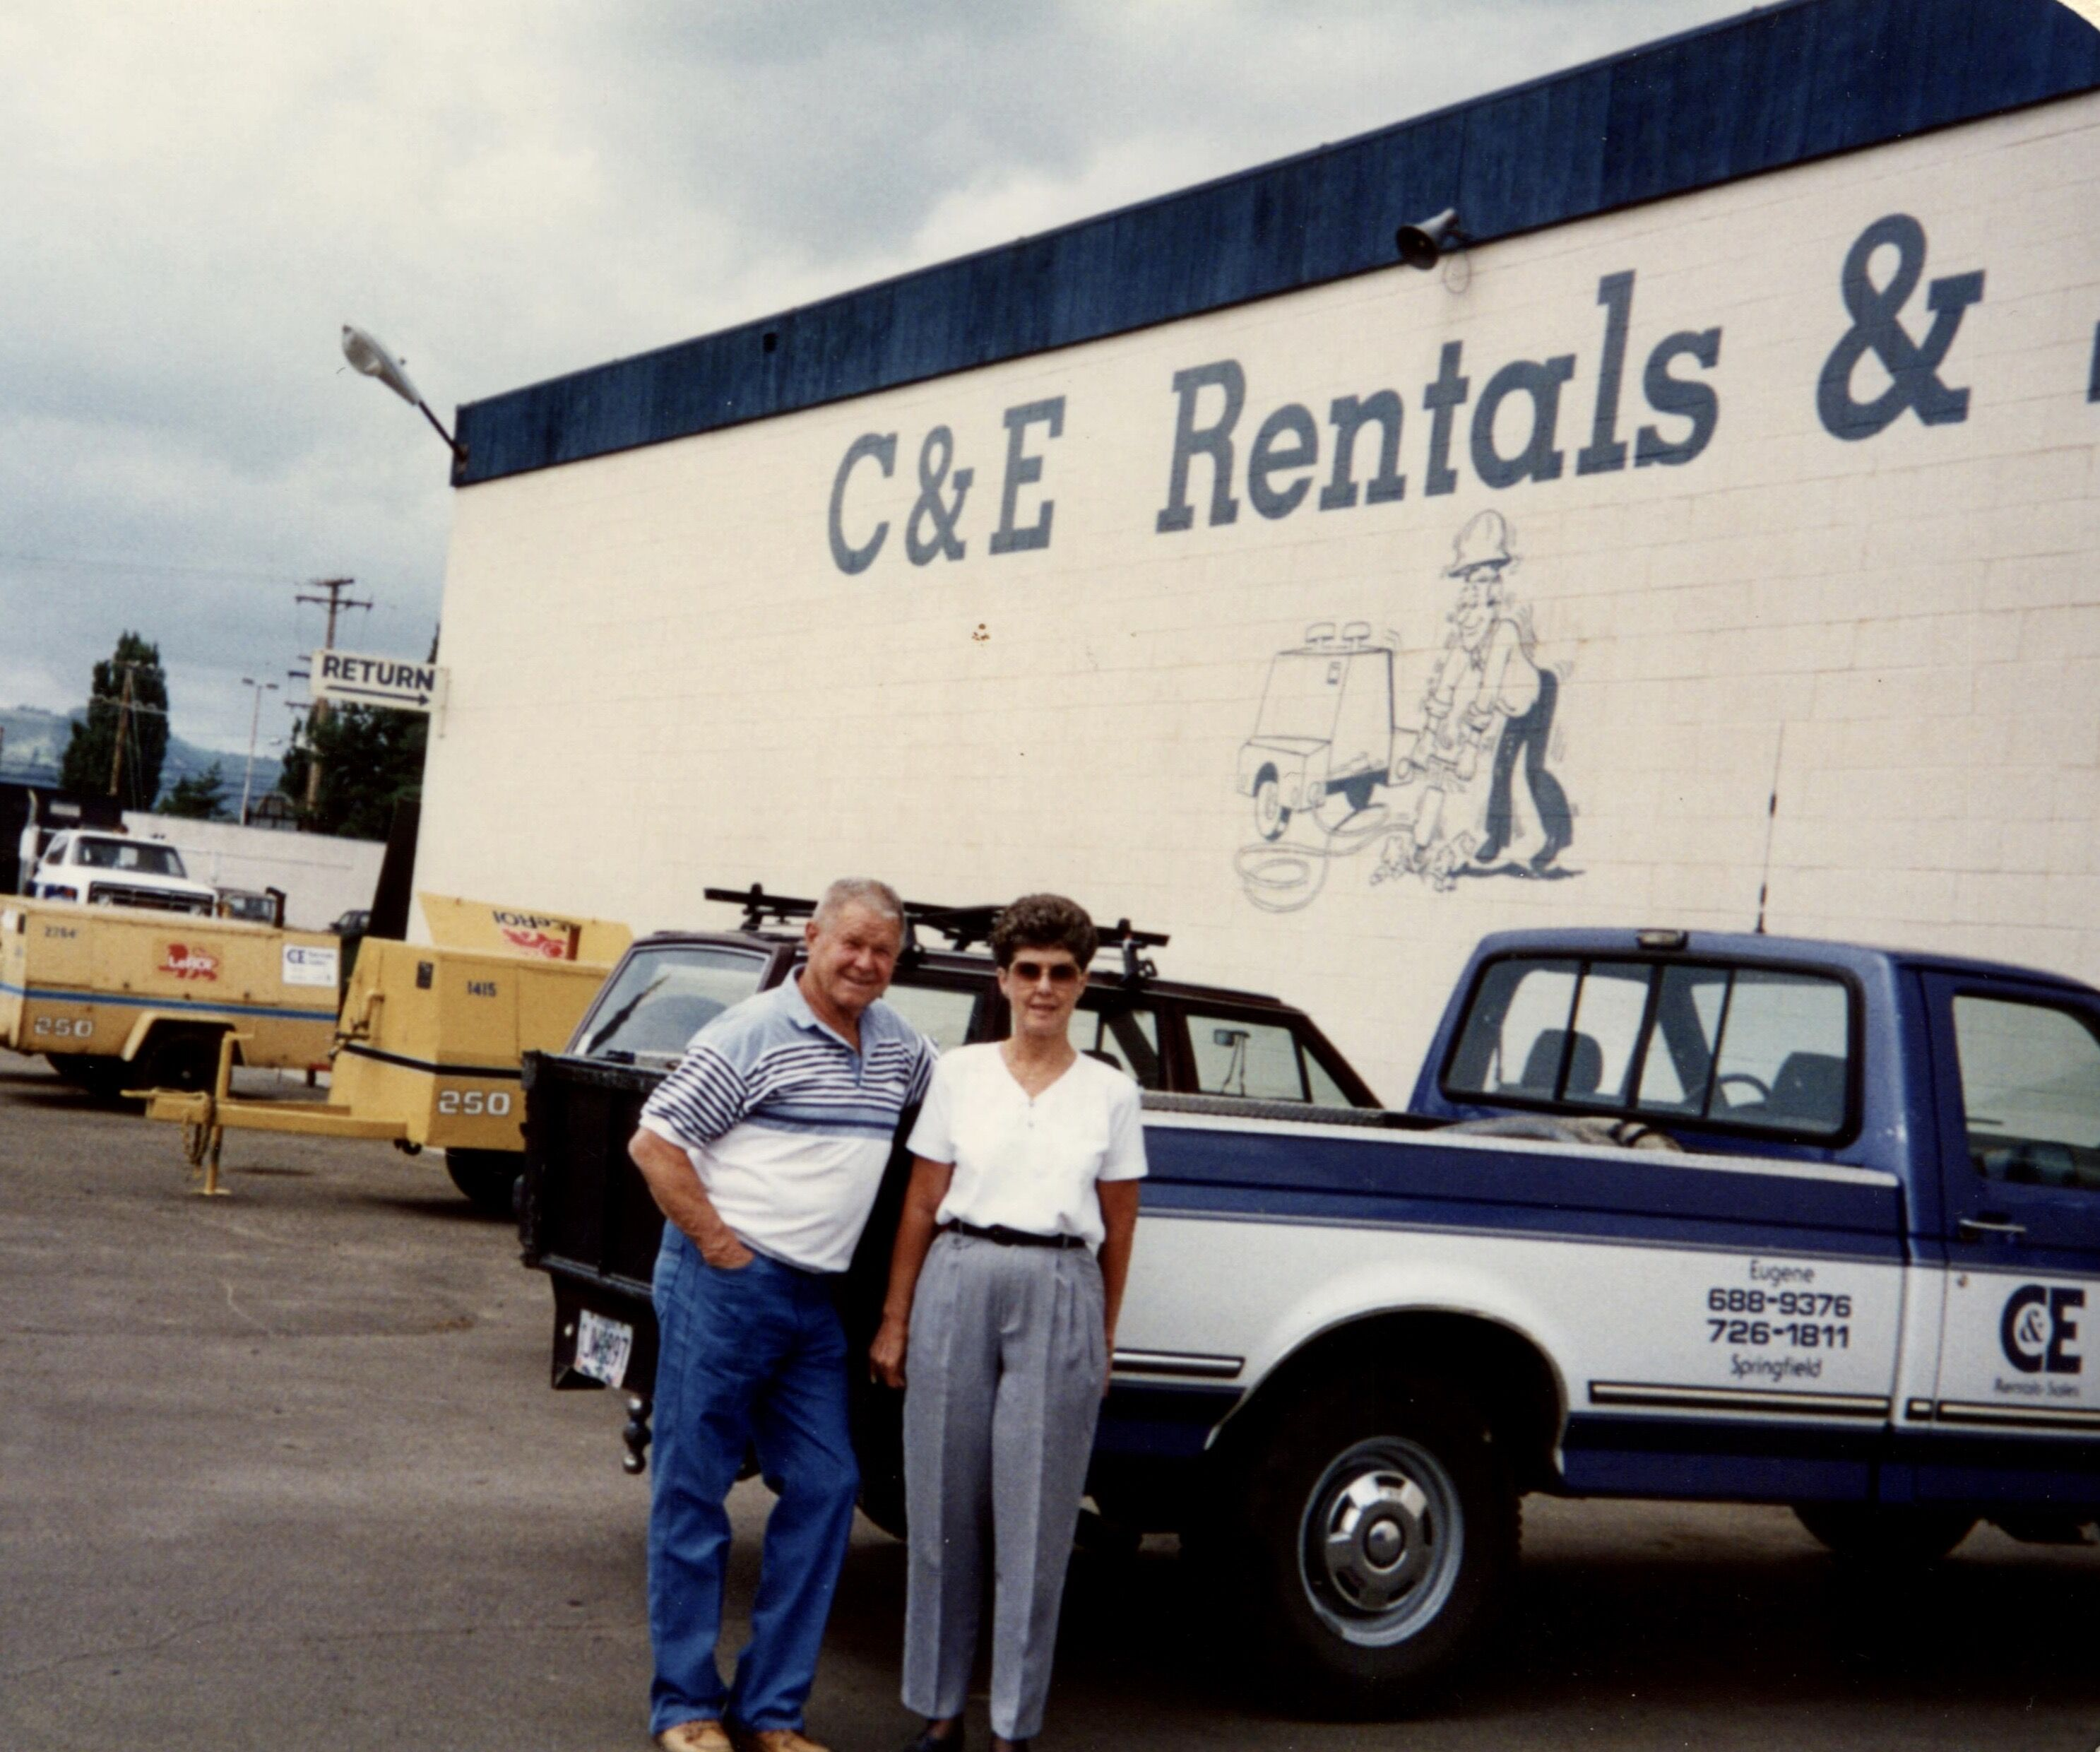 Find out more about C & E Rentals